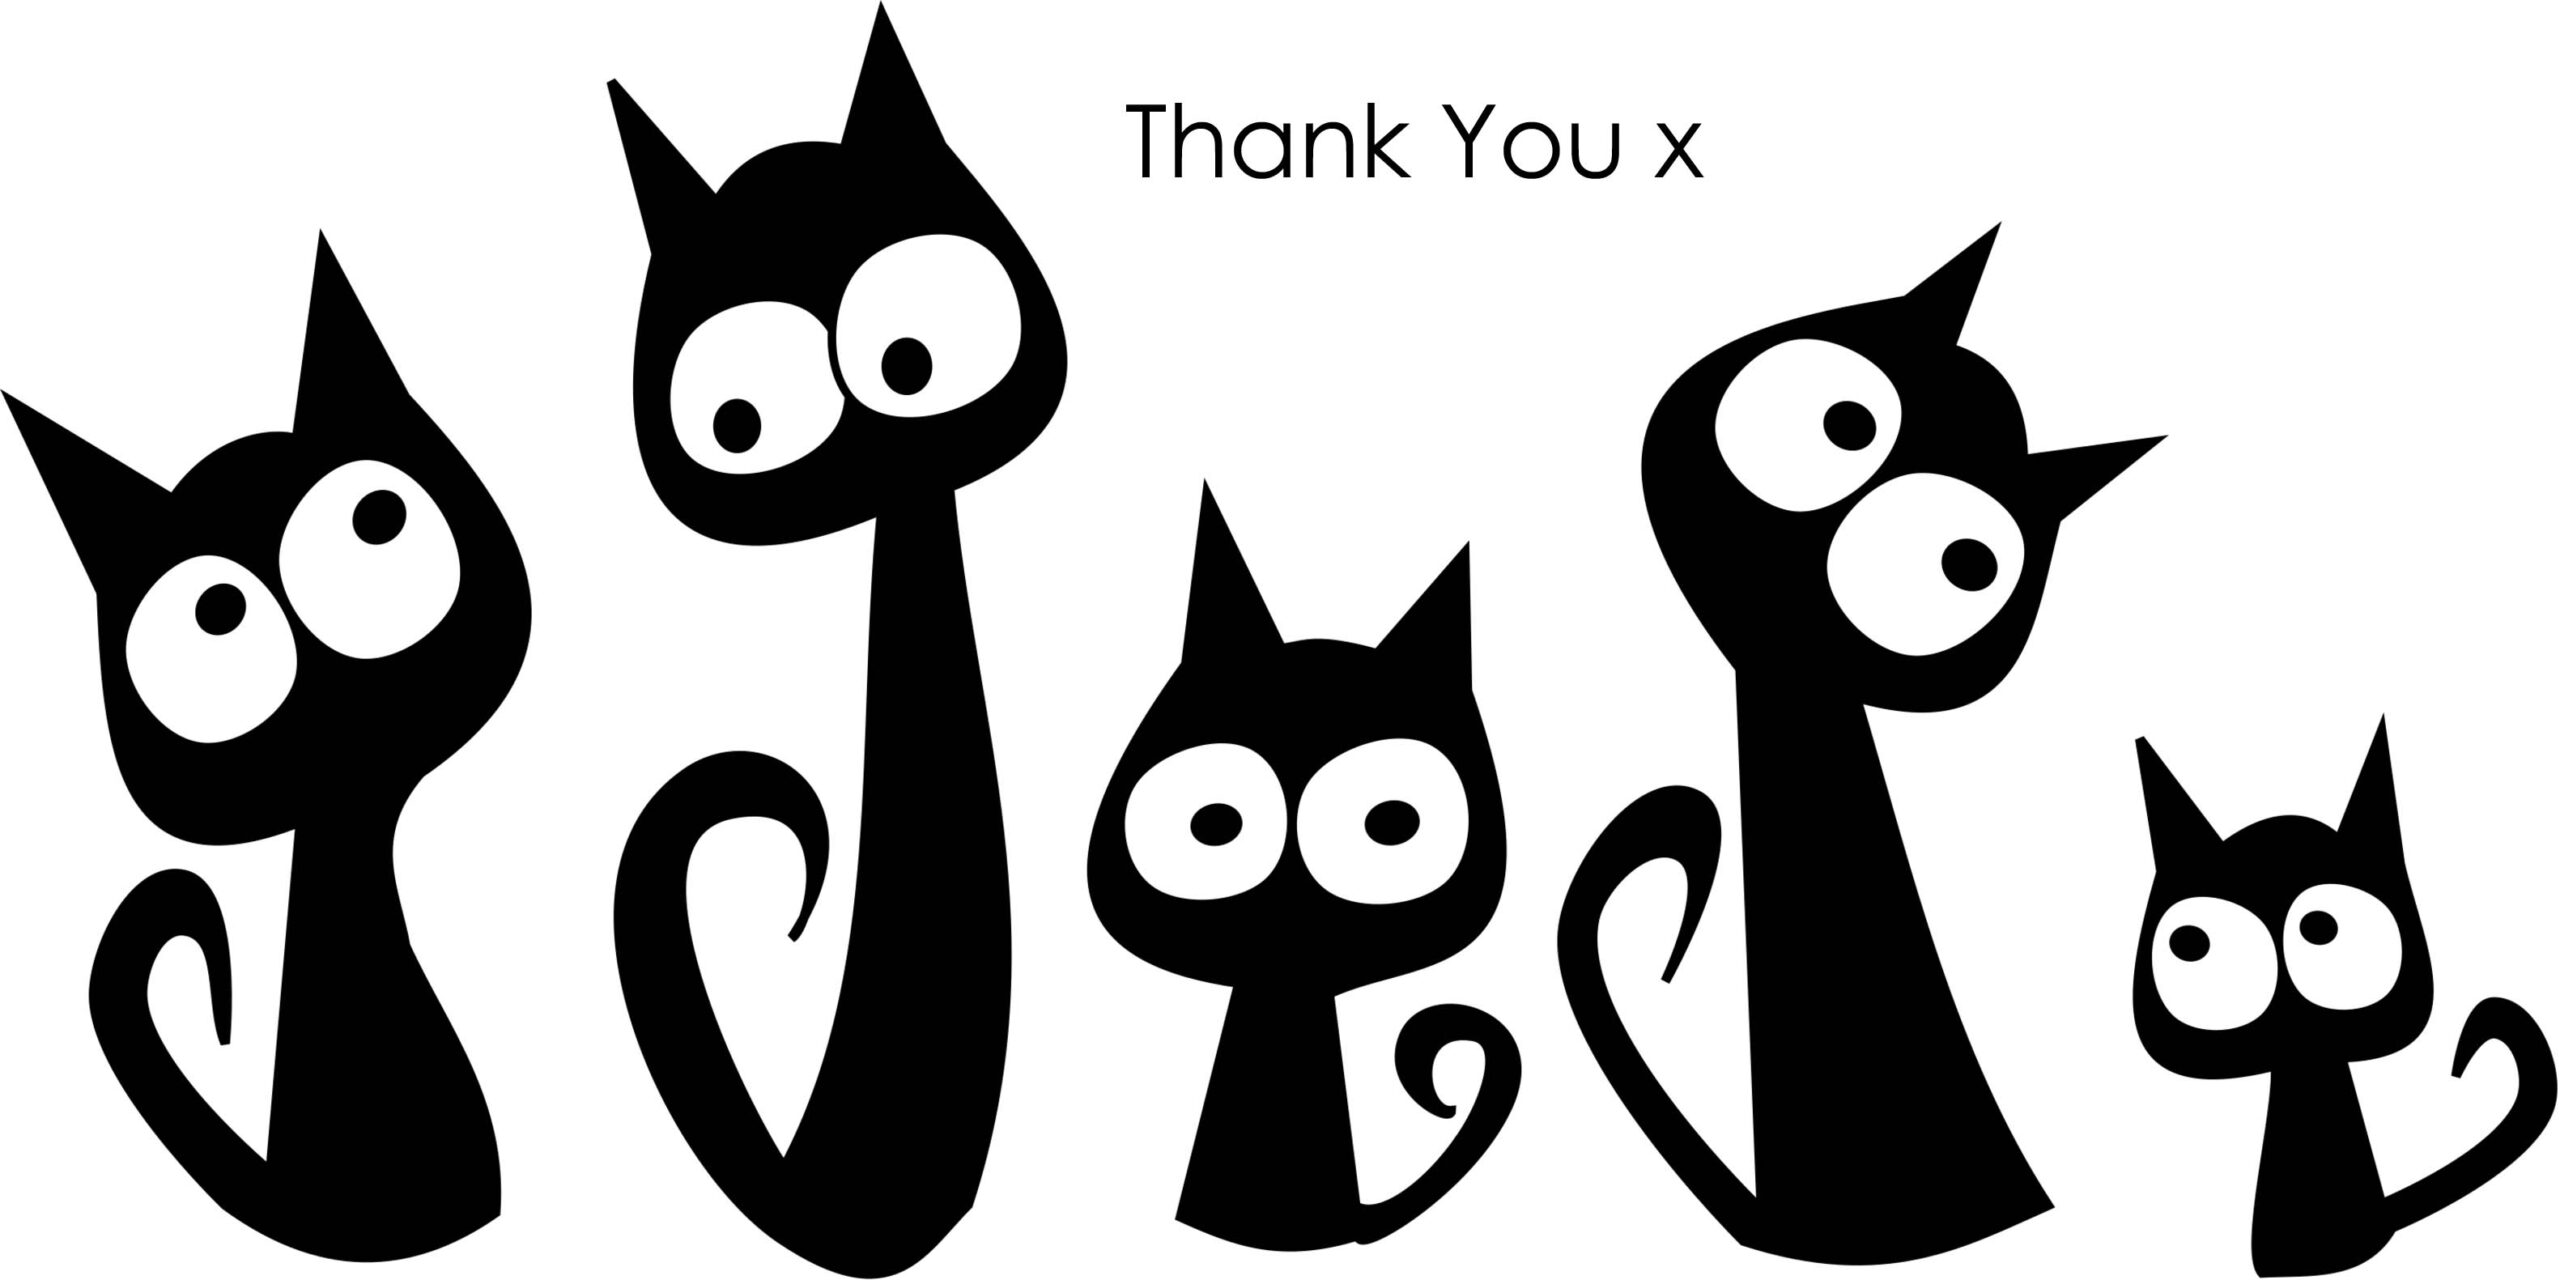 THANK YOU for your donation to Cat Call